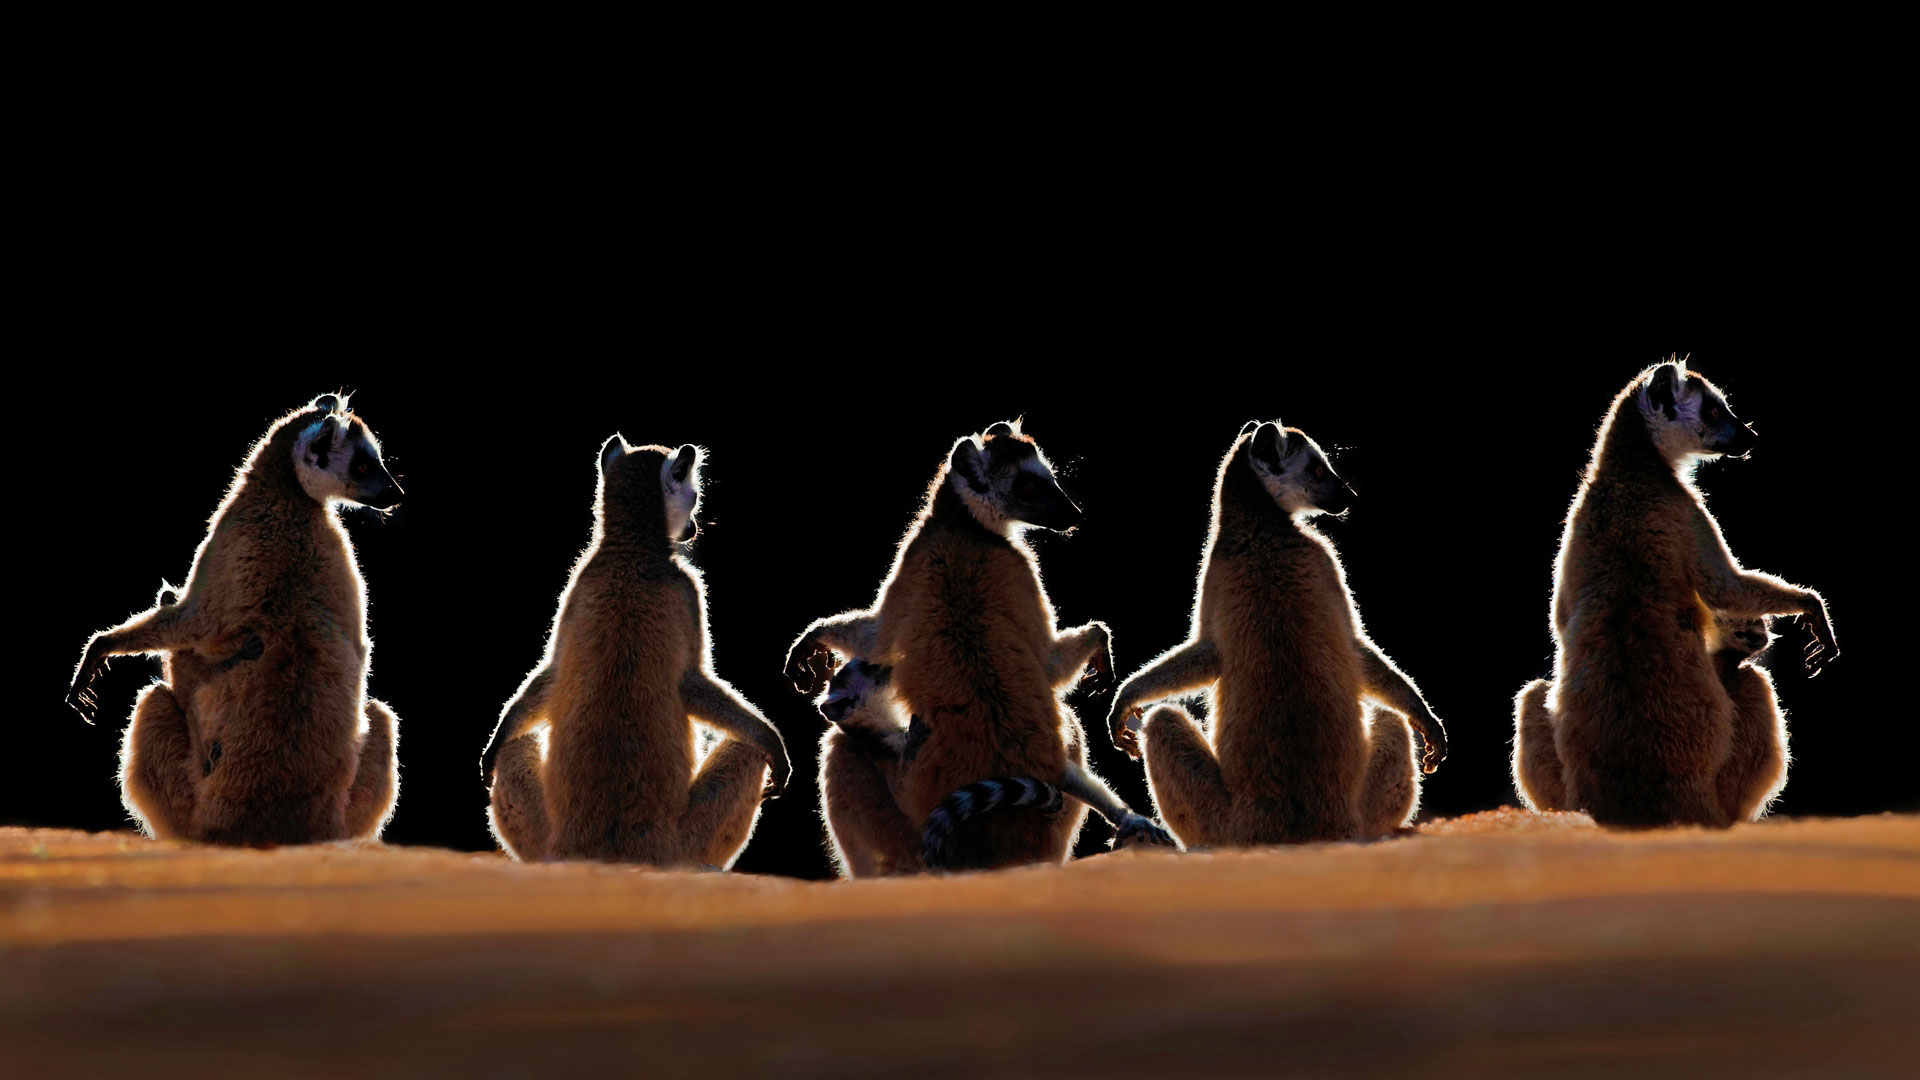 https://www.bing.com/az/hprichbg/rb/MadagascarLemurs_ROW7986241575_1920x1080.jpg